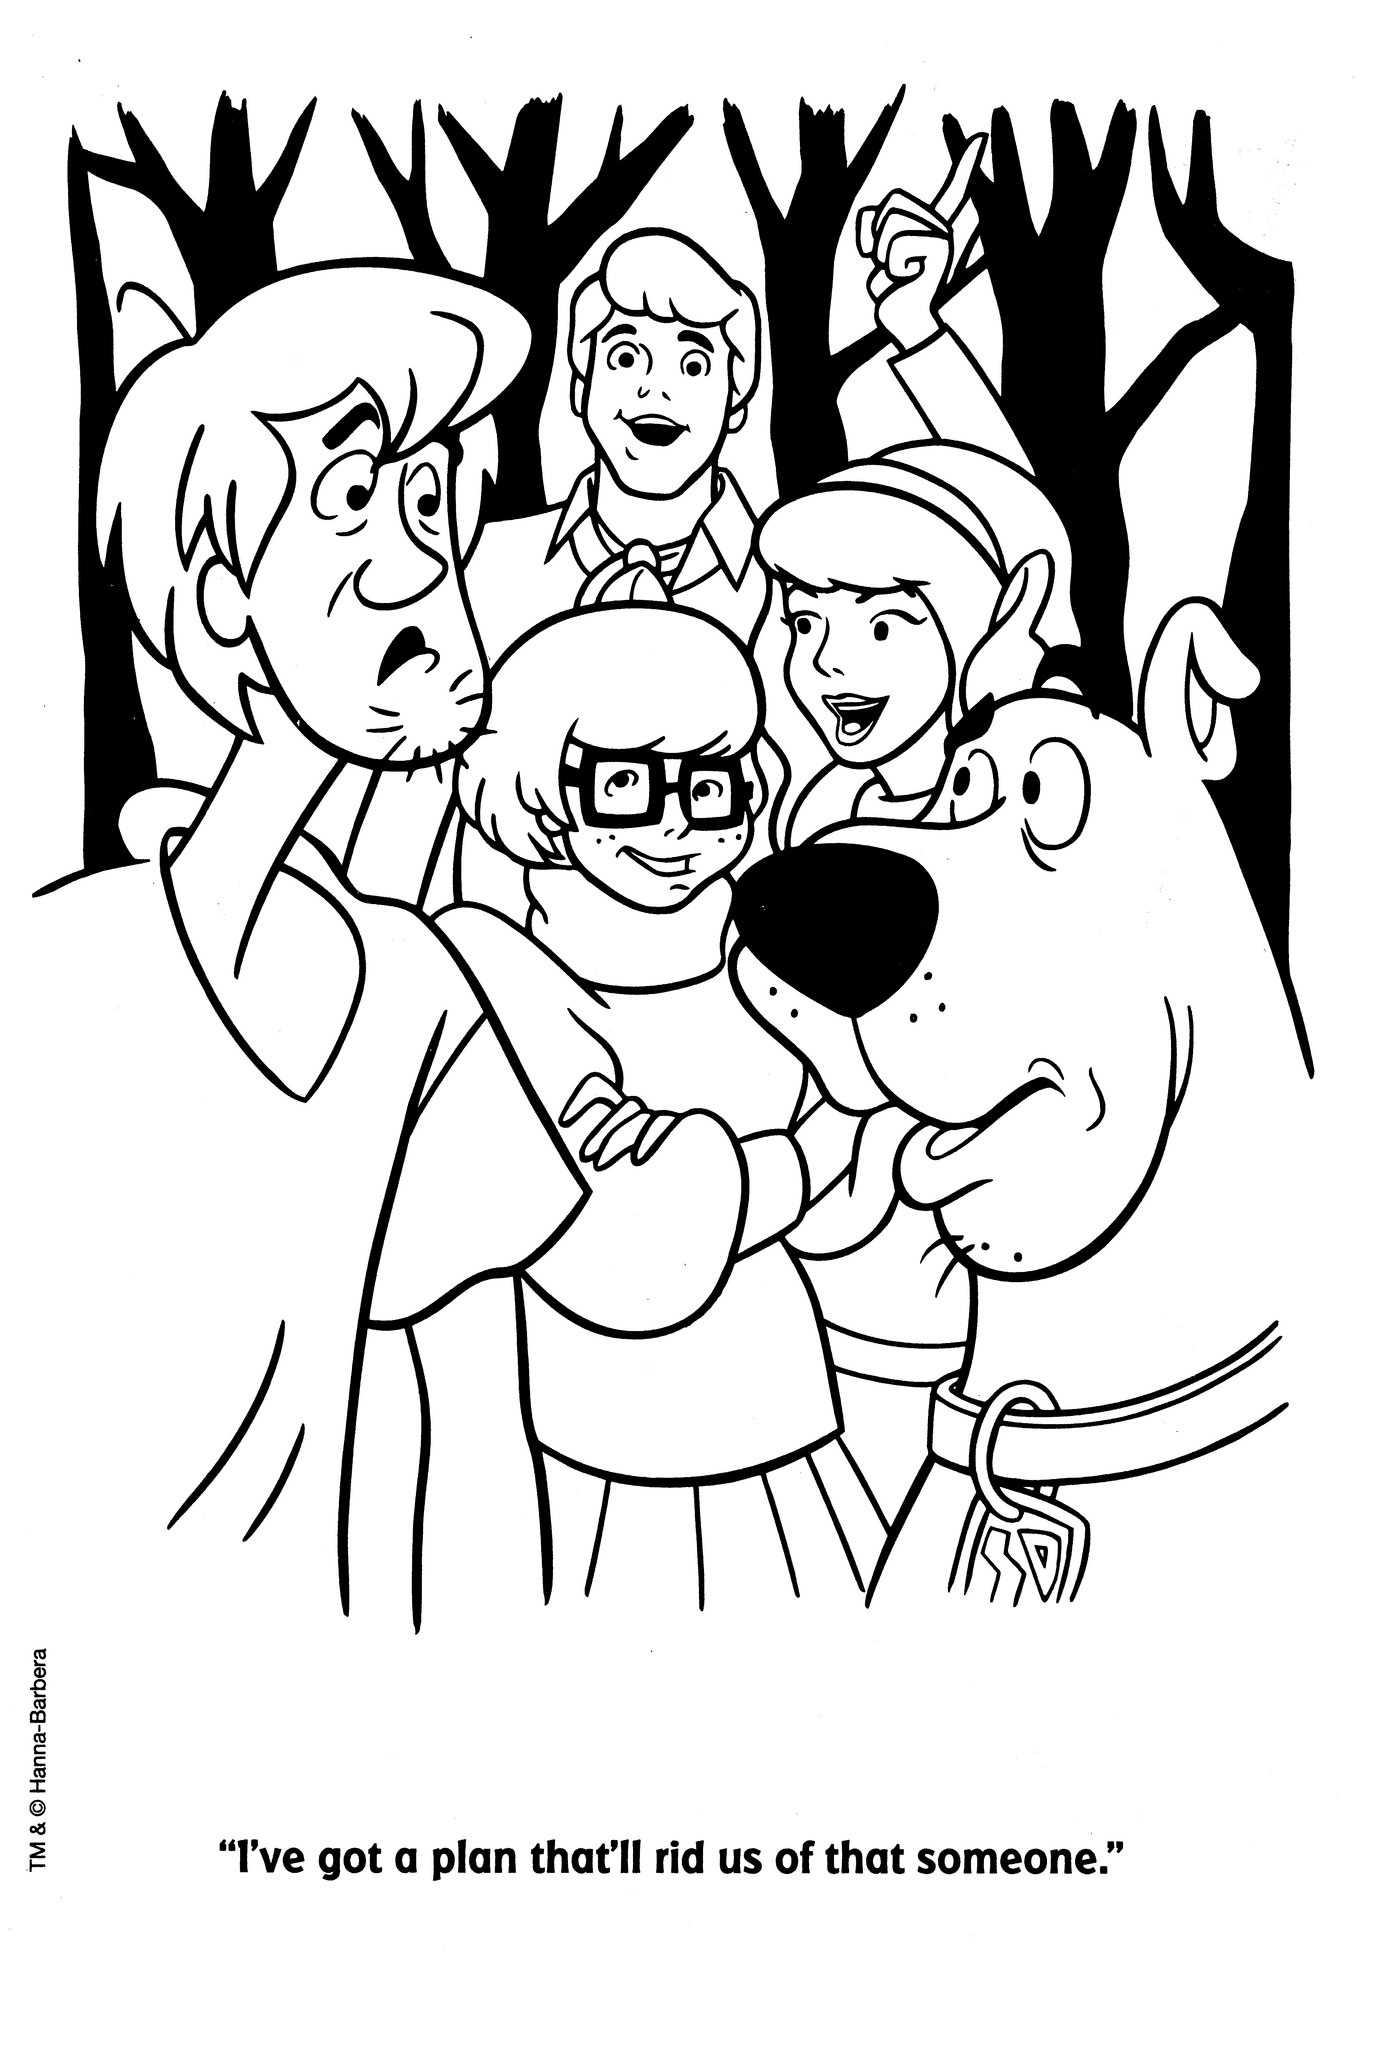 scooby doo coloring pages online free scooby doo with ful stomach coloring play free coloring coloring pages online scooby doo free